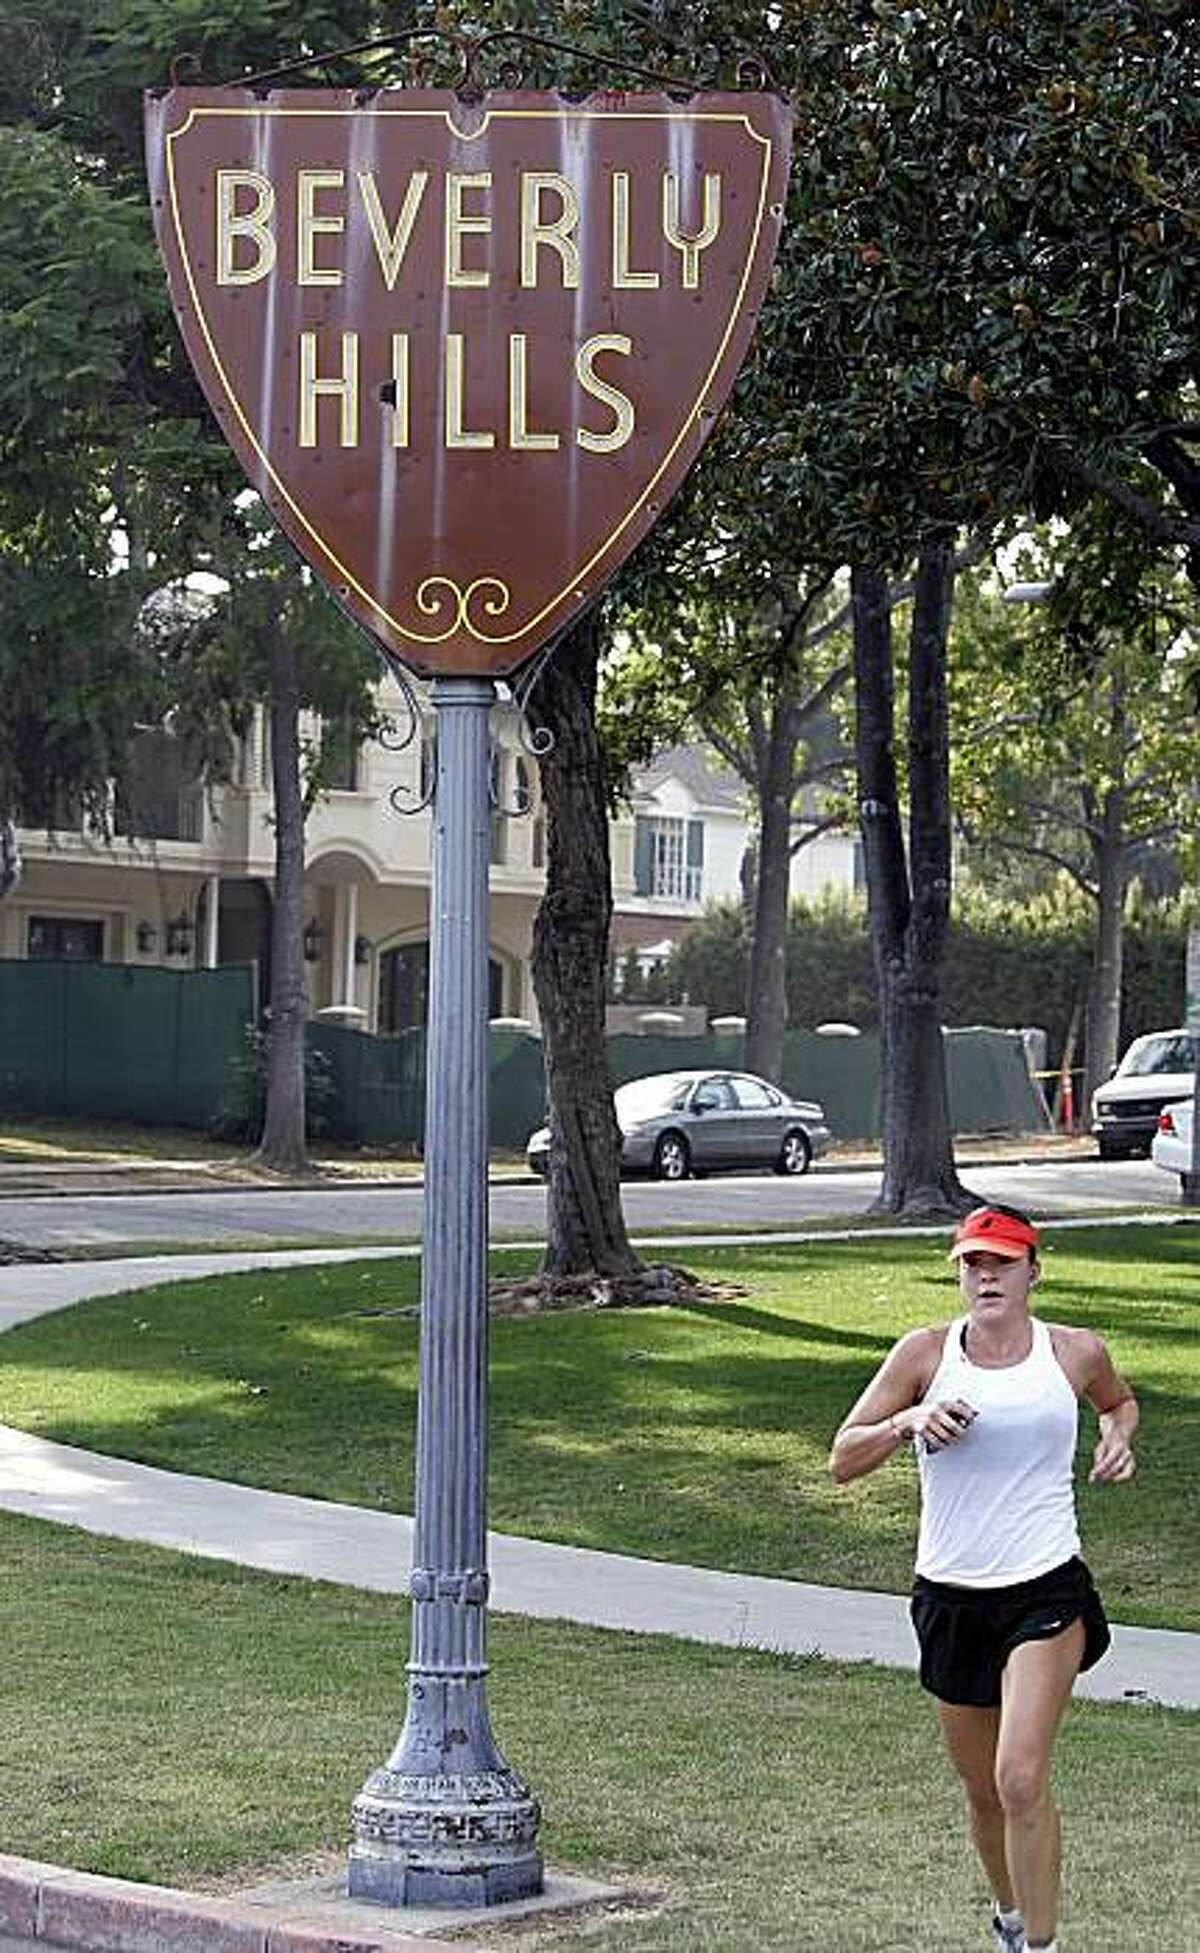 the Beverly Hills shield sign